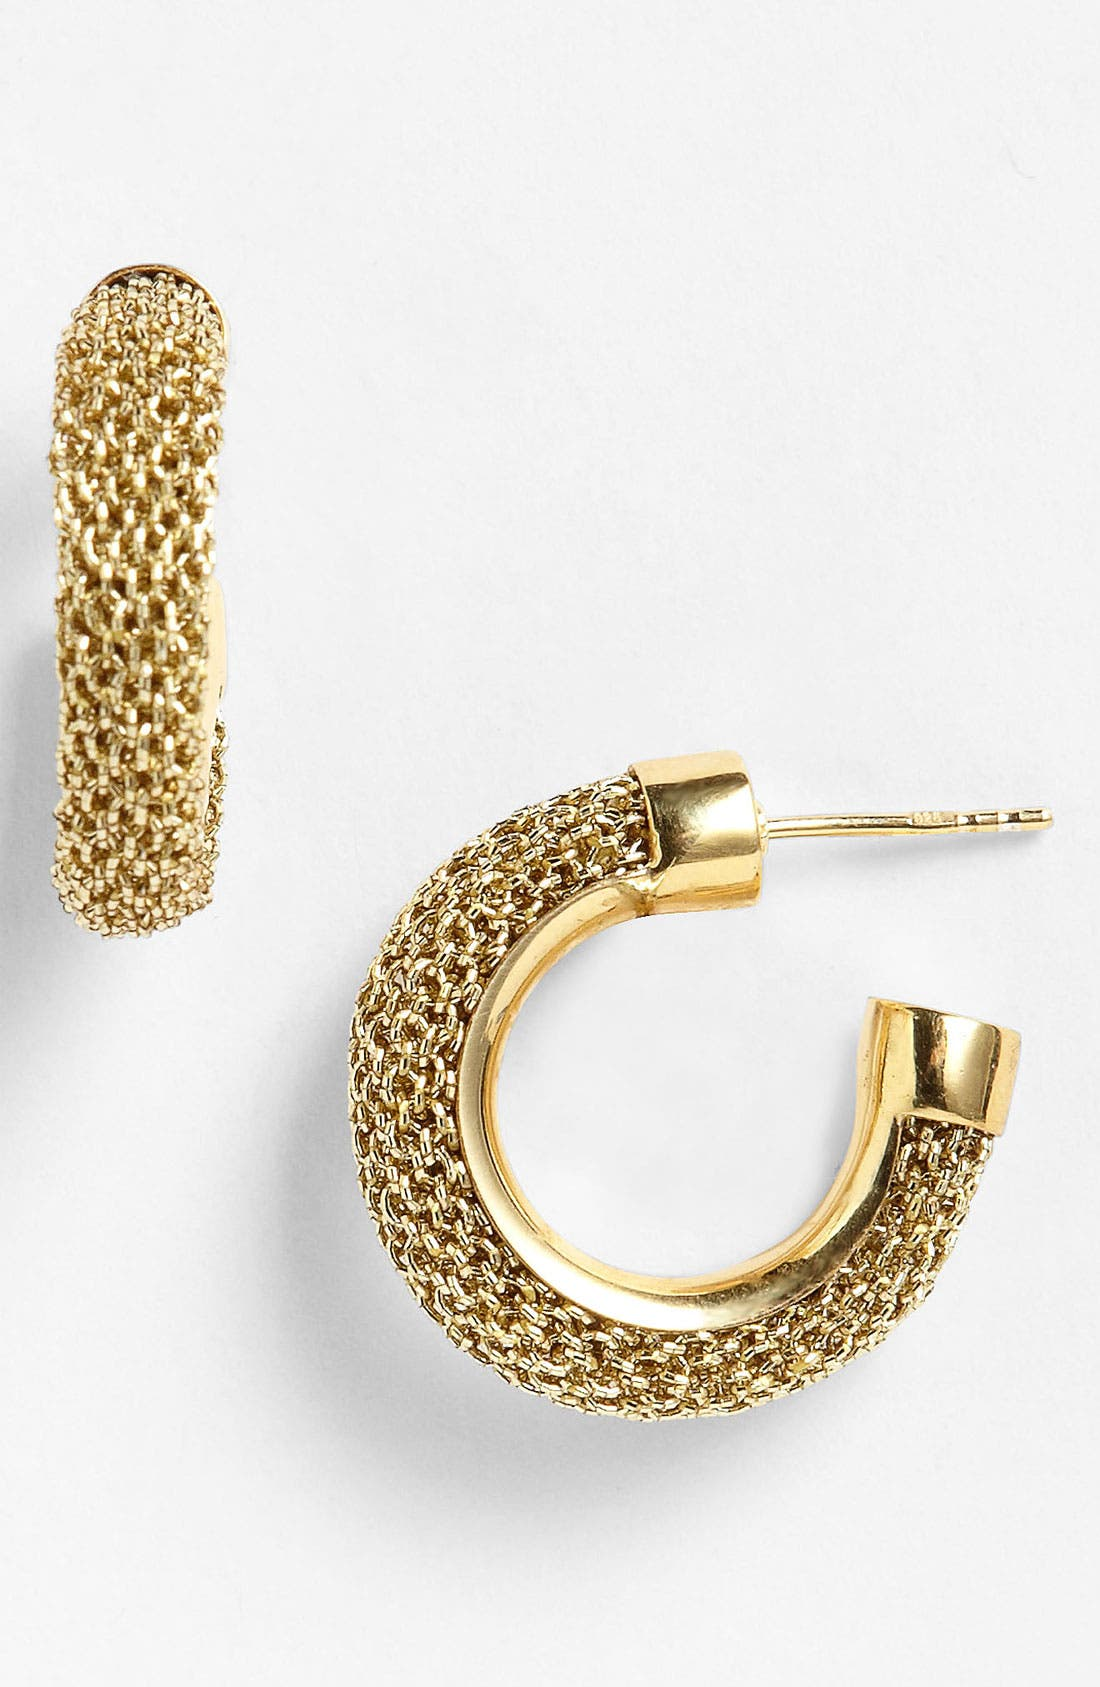 Main Image - Adami & Martucci 'Mesh' Mini Hoop Earrings